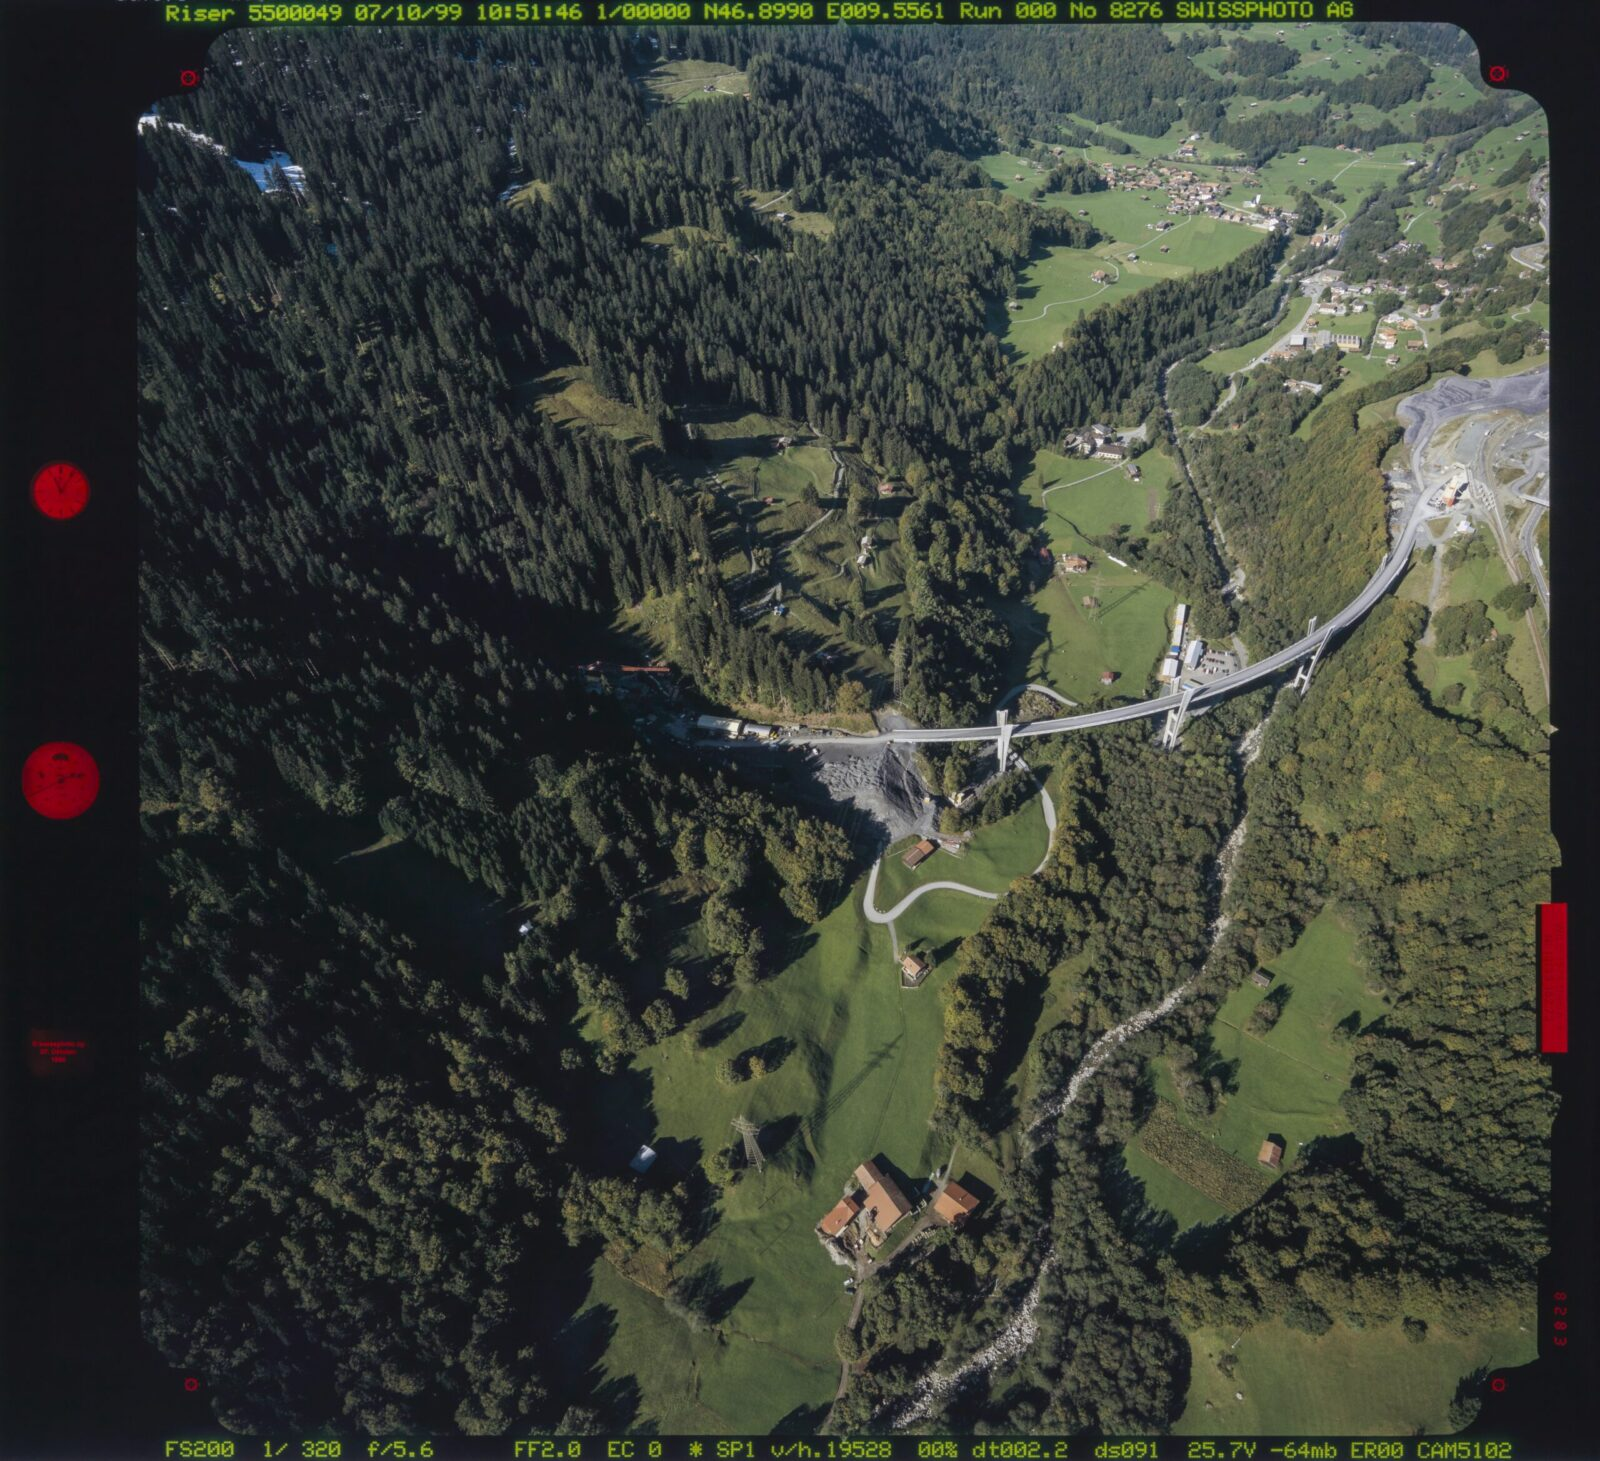 Without doubt, the most well-known structure by Christian Menn is the Sunniberg Bridge near Klosters in the canton of Graubünden, which was opened in 2005.